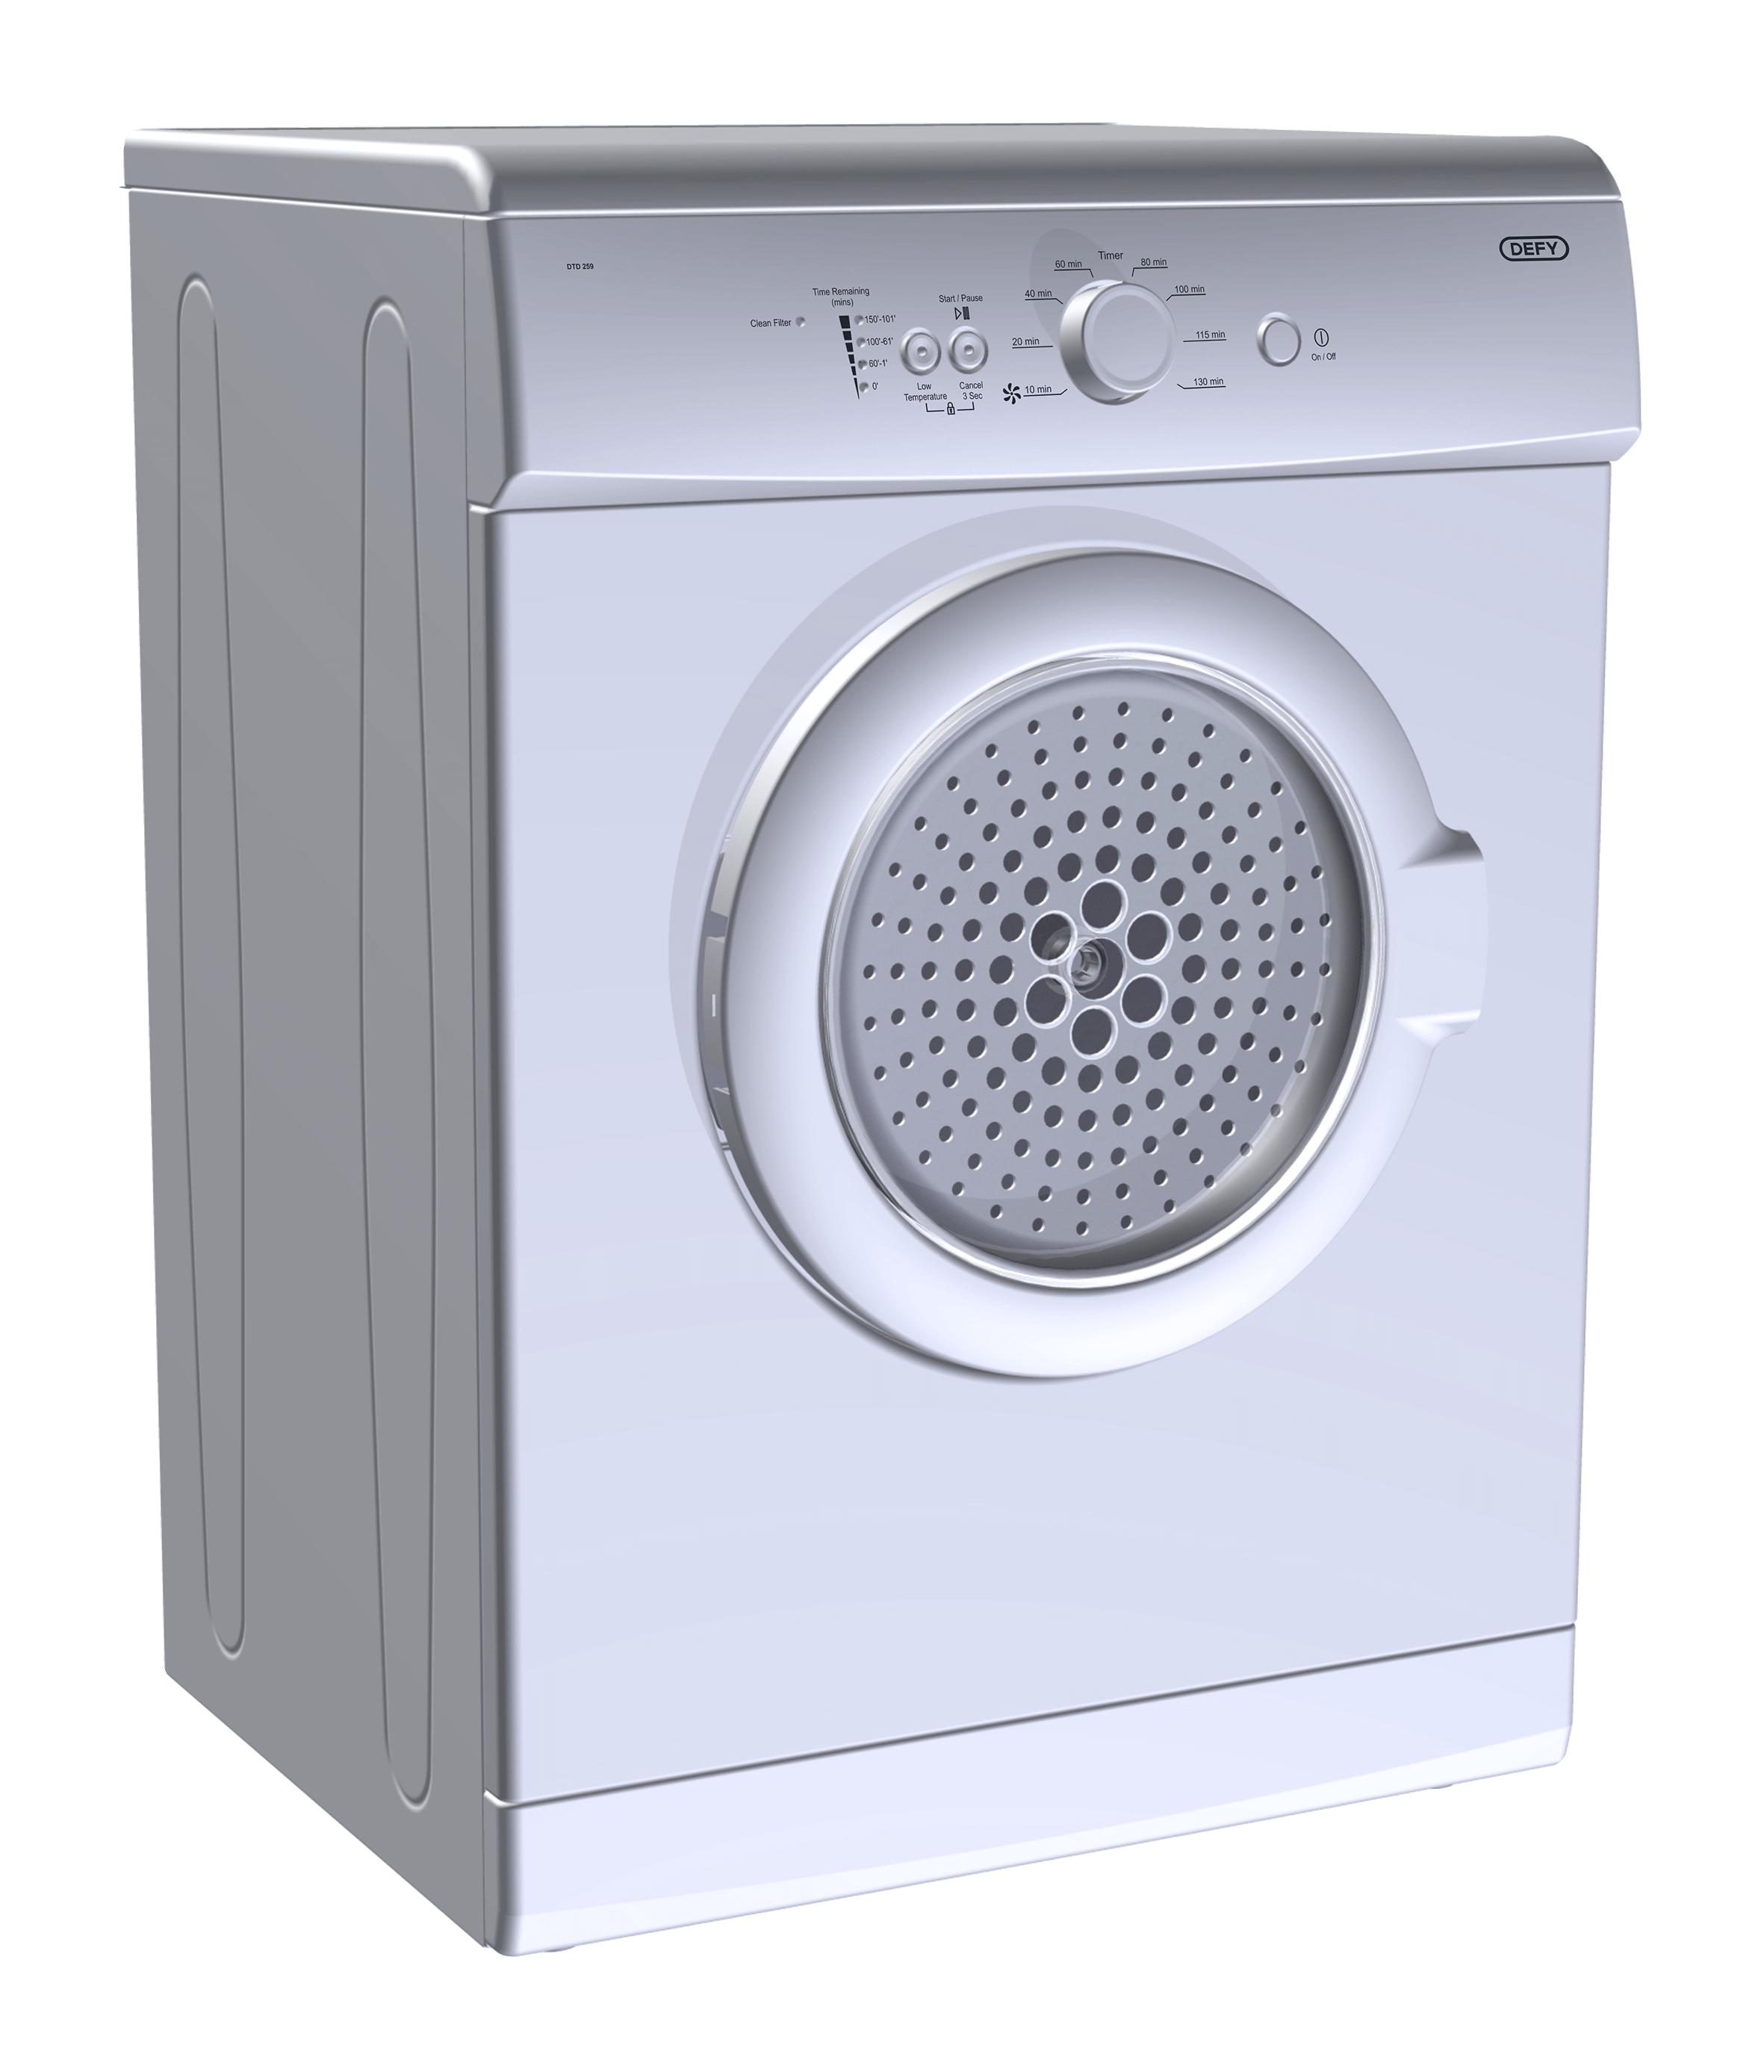 Defy Air Vented Tumble Dryer Metallic Model Dtd259